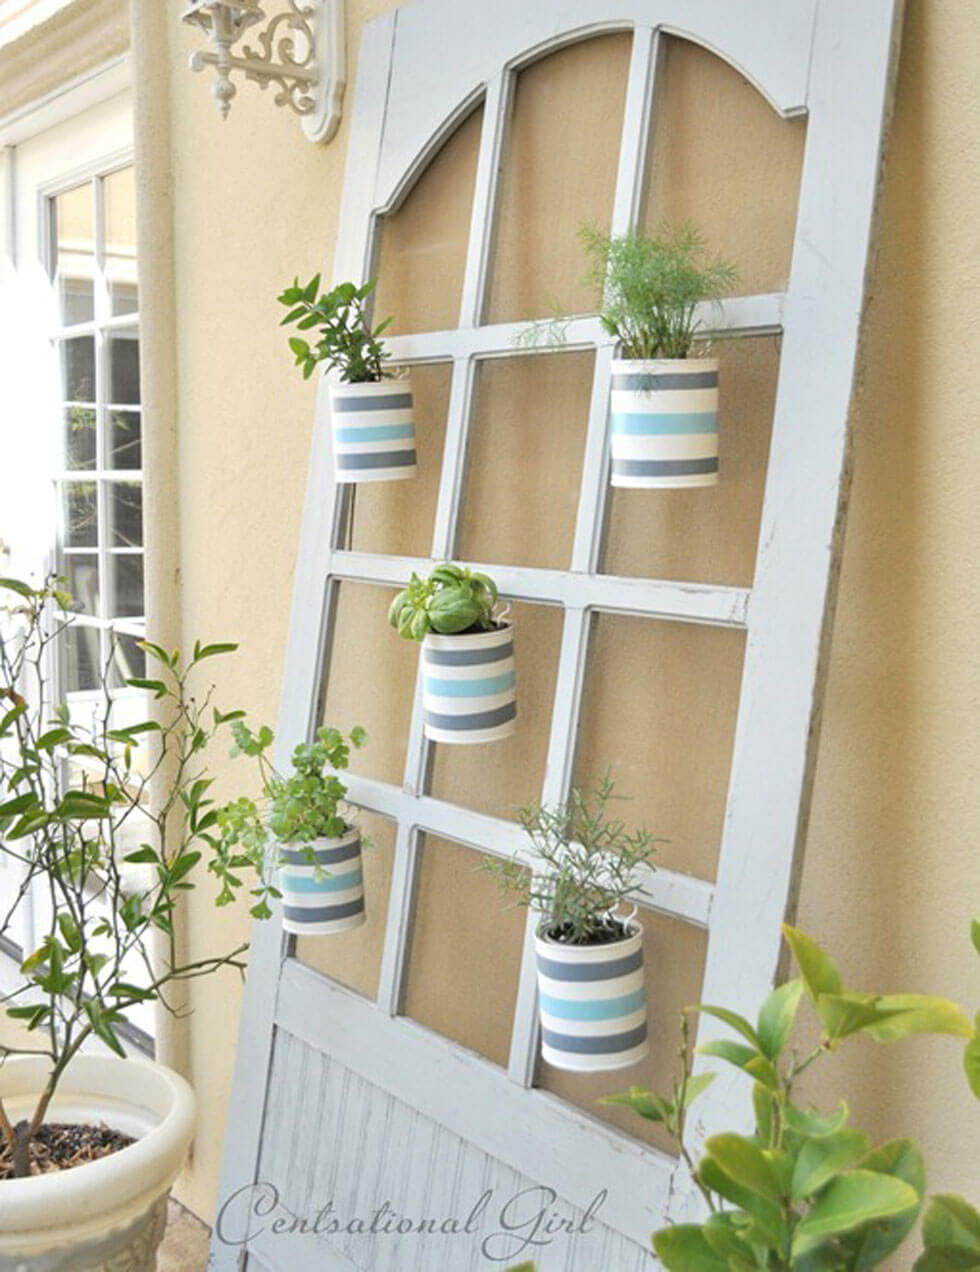 Repurposed Hutch Door Living Wall